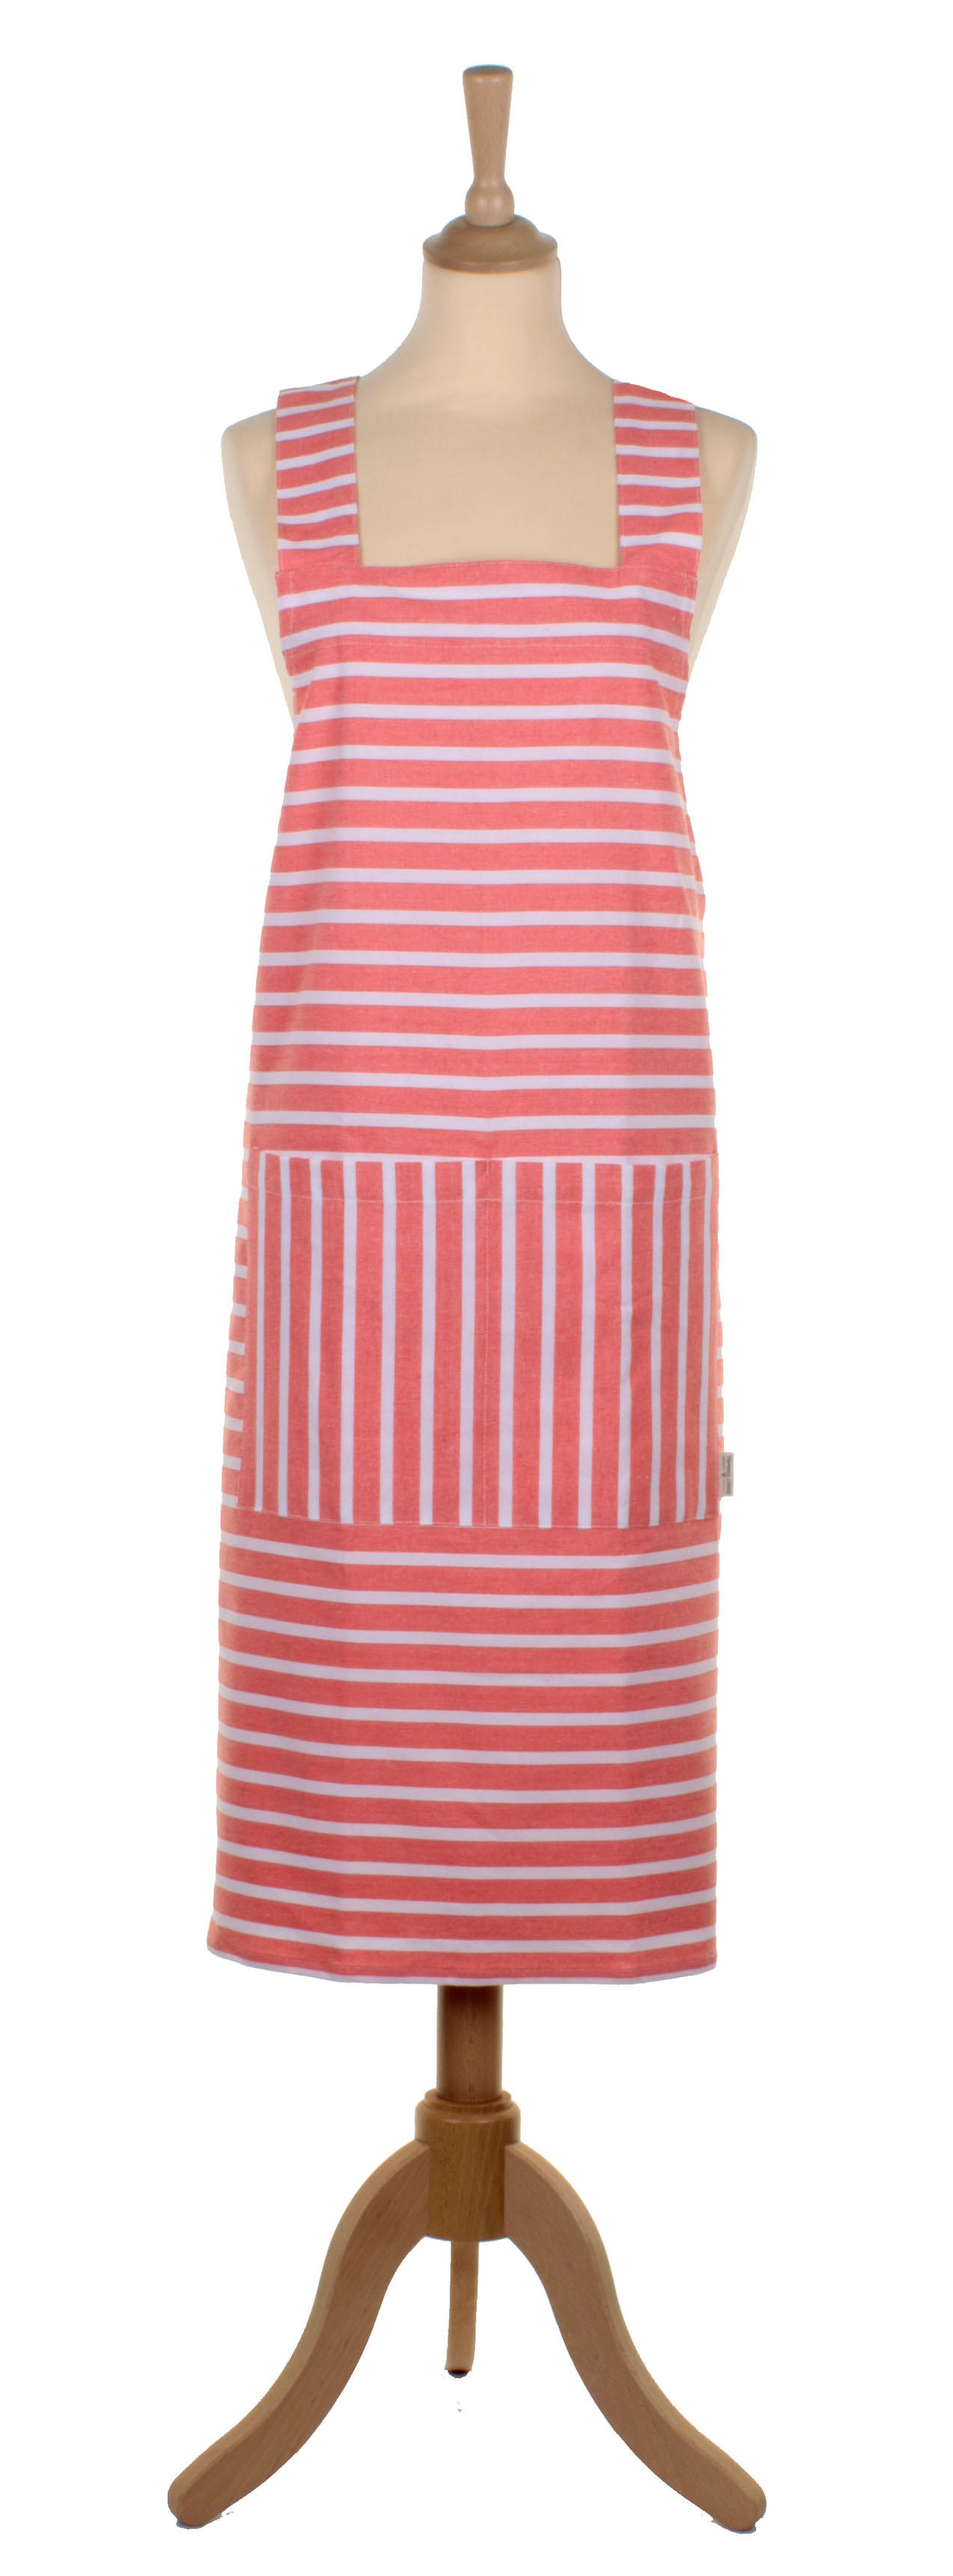 Studio Cotton Apron Seasalt Breton Redhaven